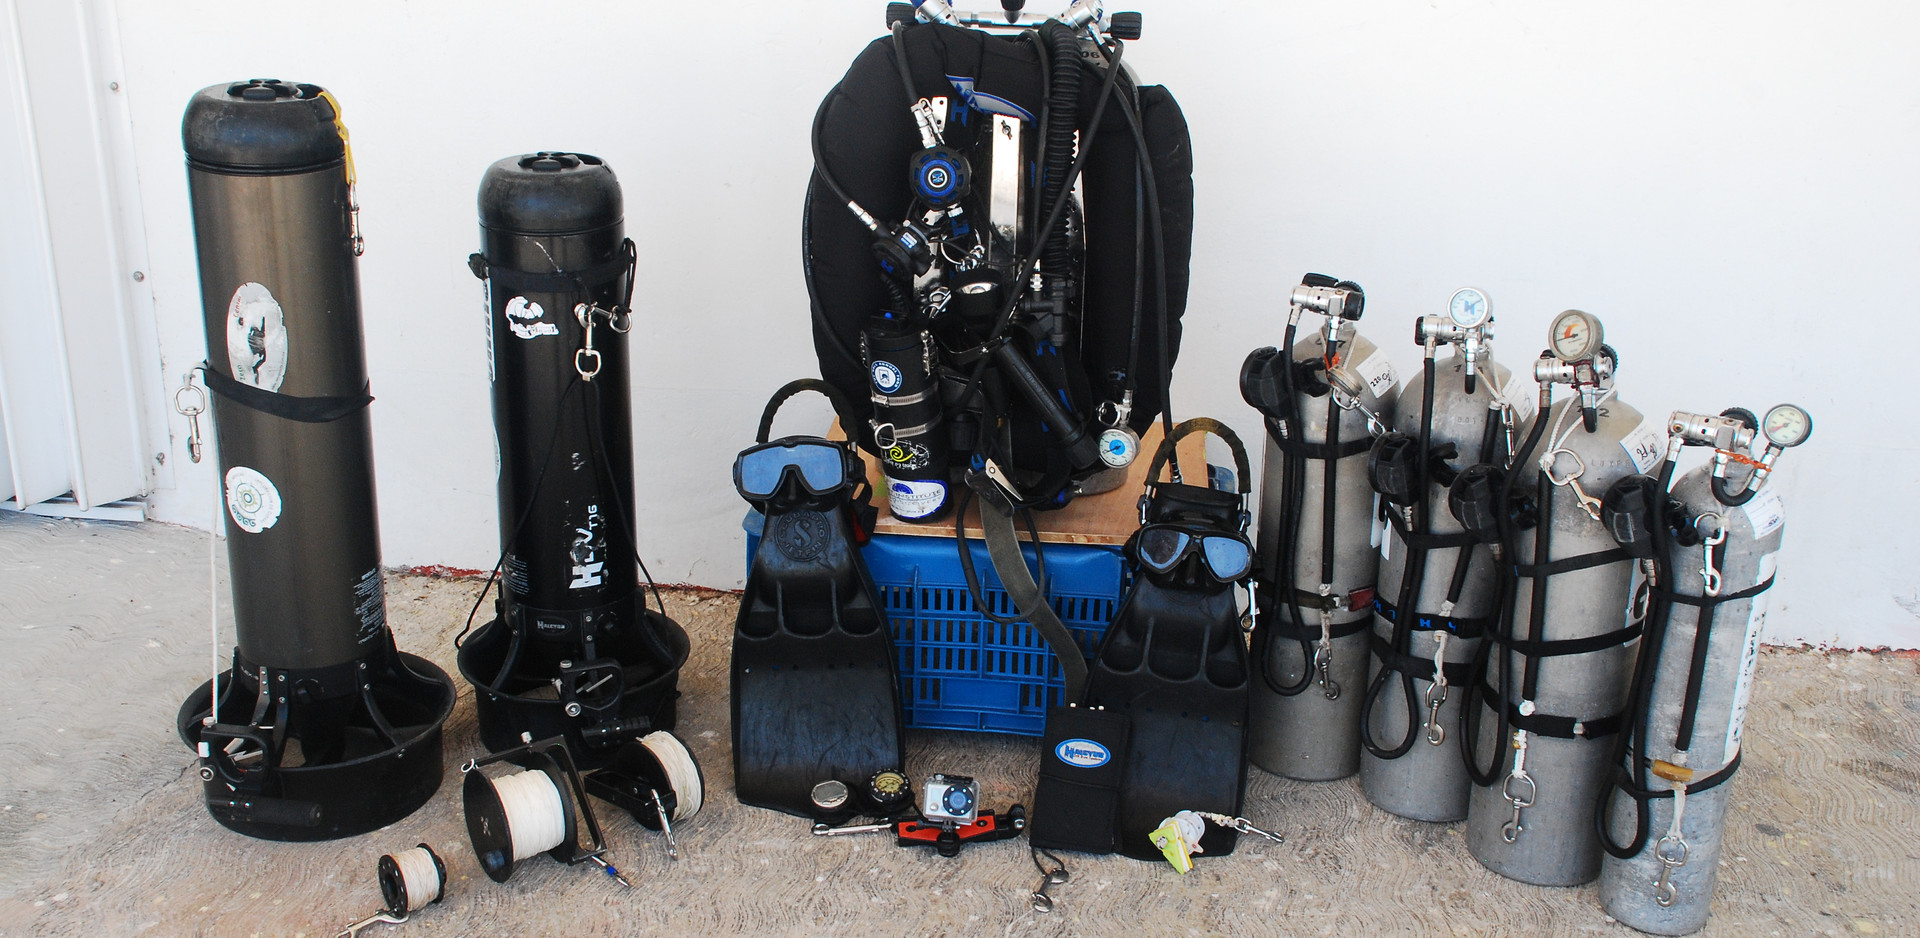 Cave gear